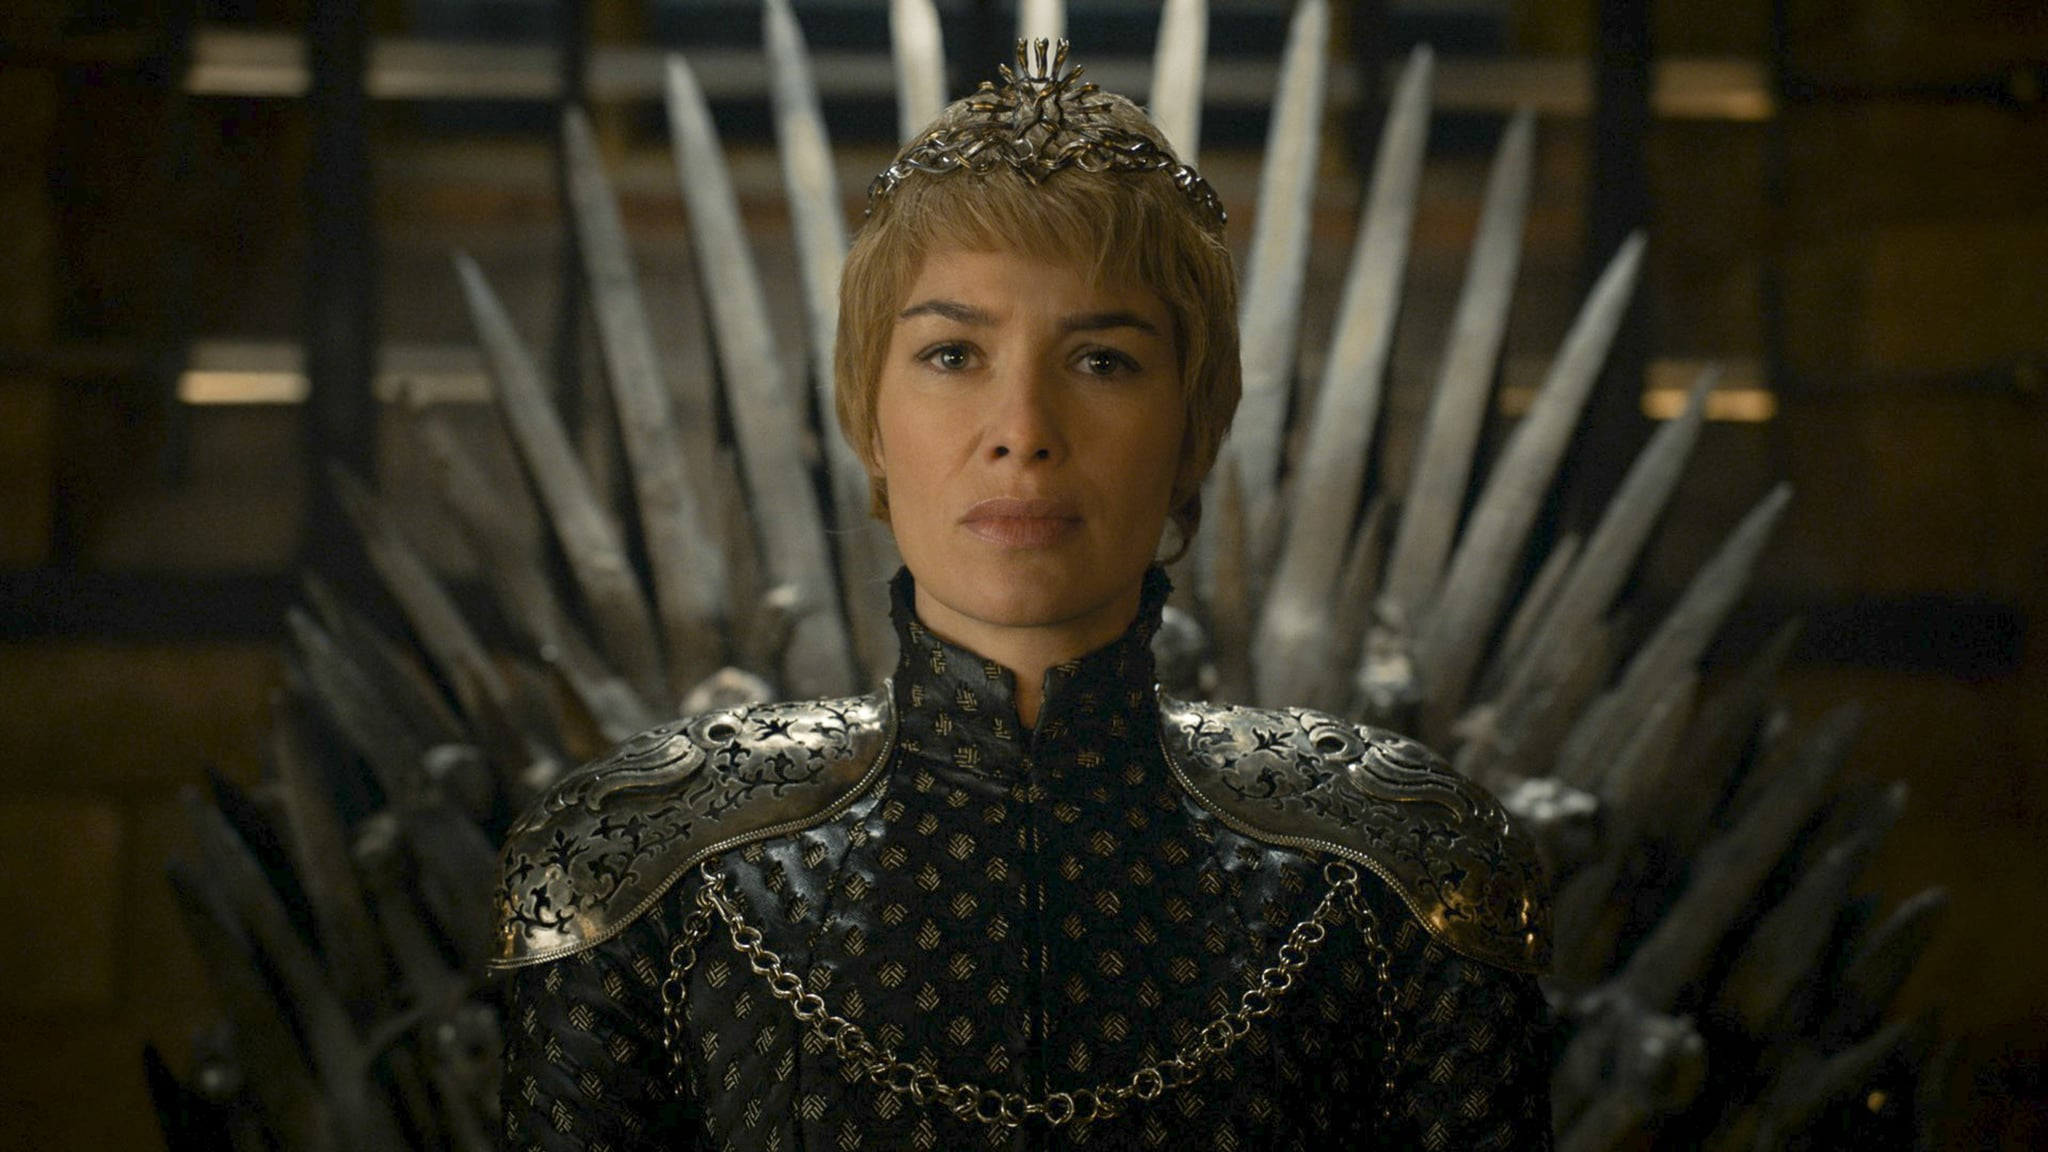 Cersei on the Iron Throne has Qyburn